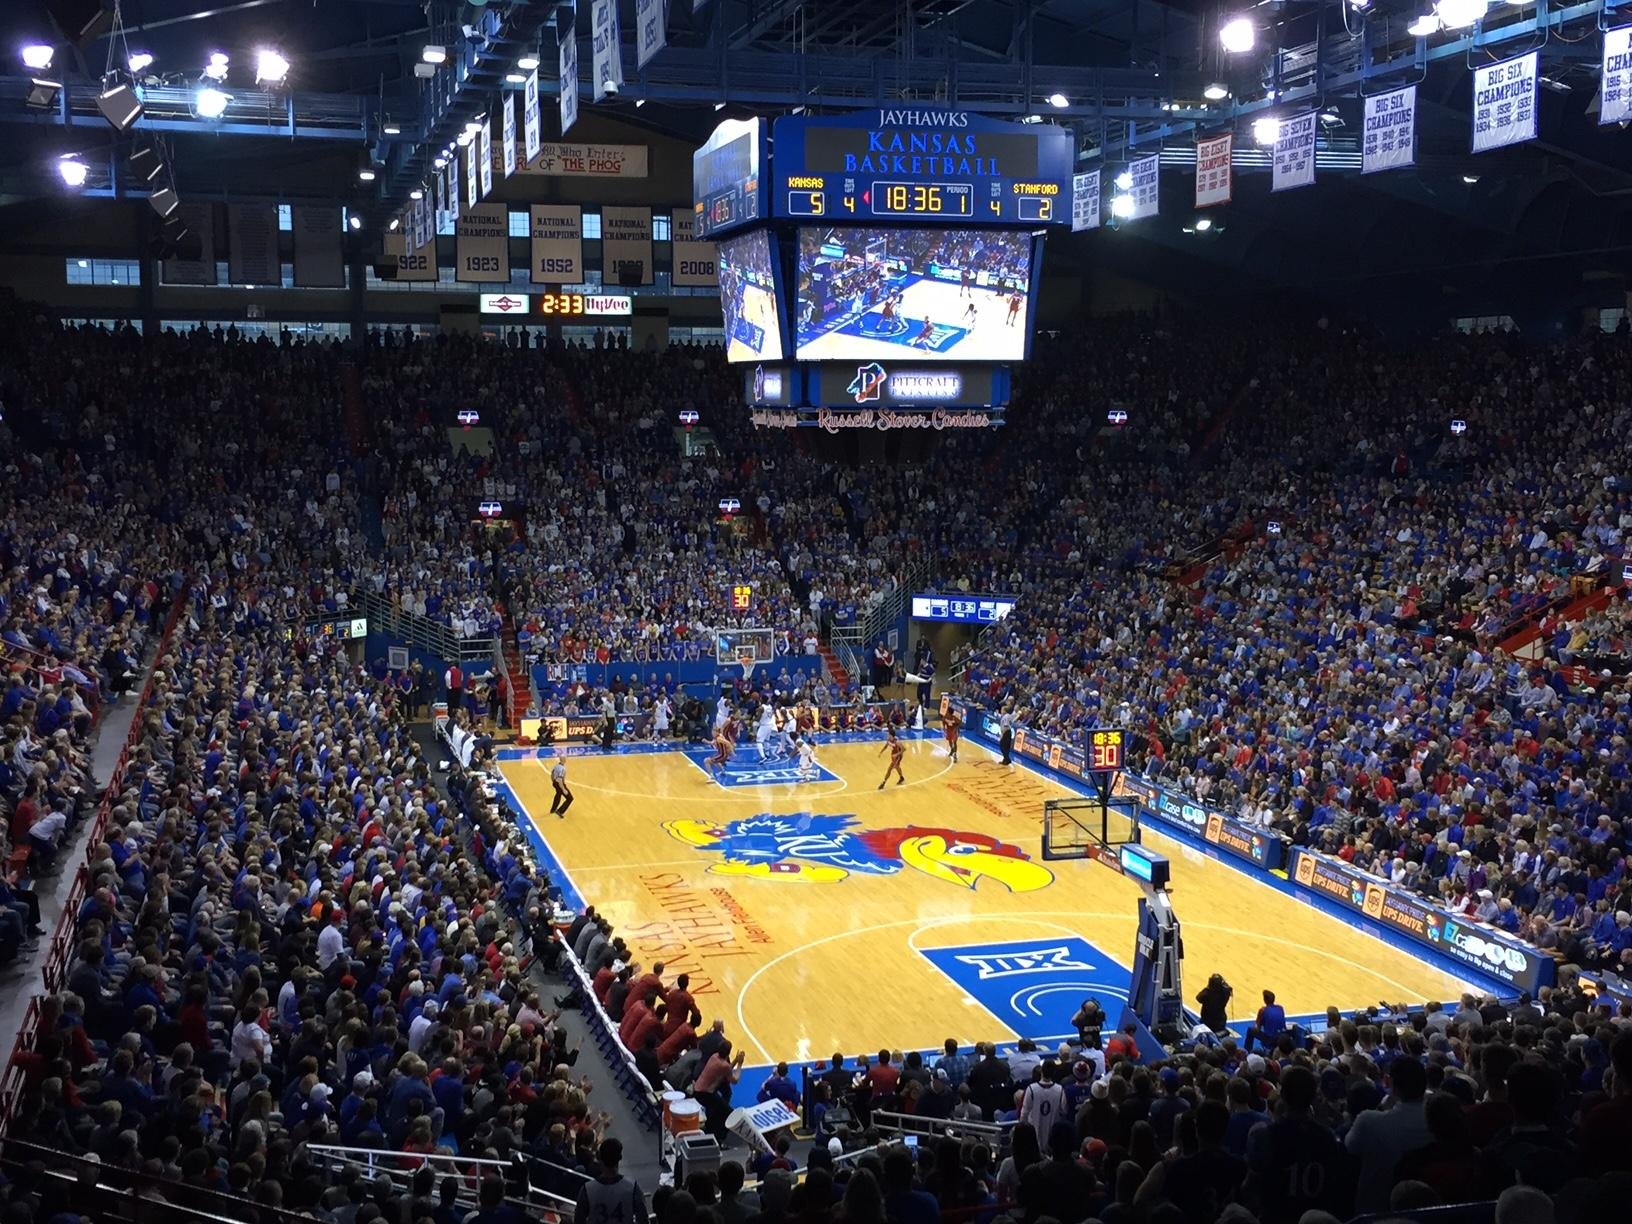 Allen Fieldhouse Section 13 Row 20 Seat 9